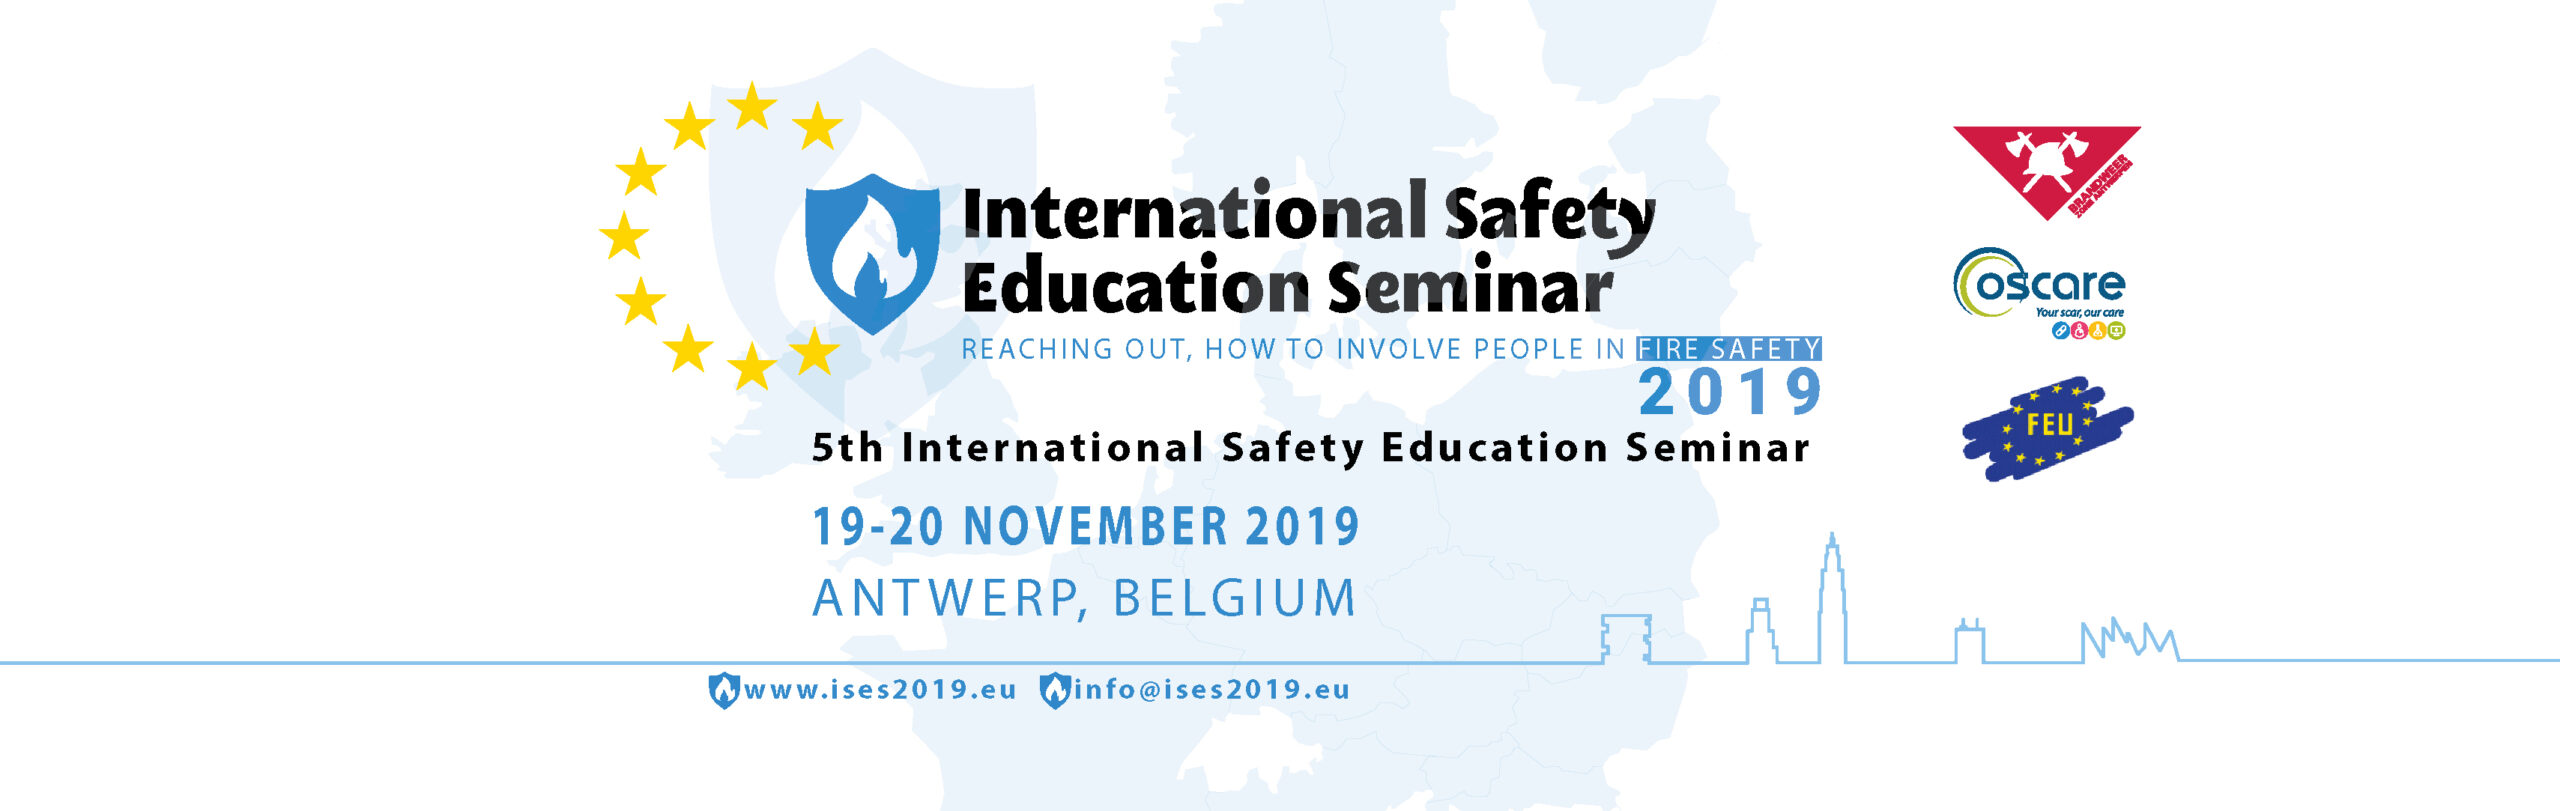 5th International Safety Education Seminar (ISES2019)